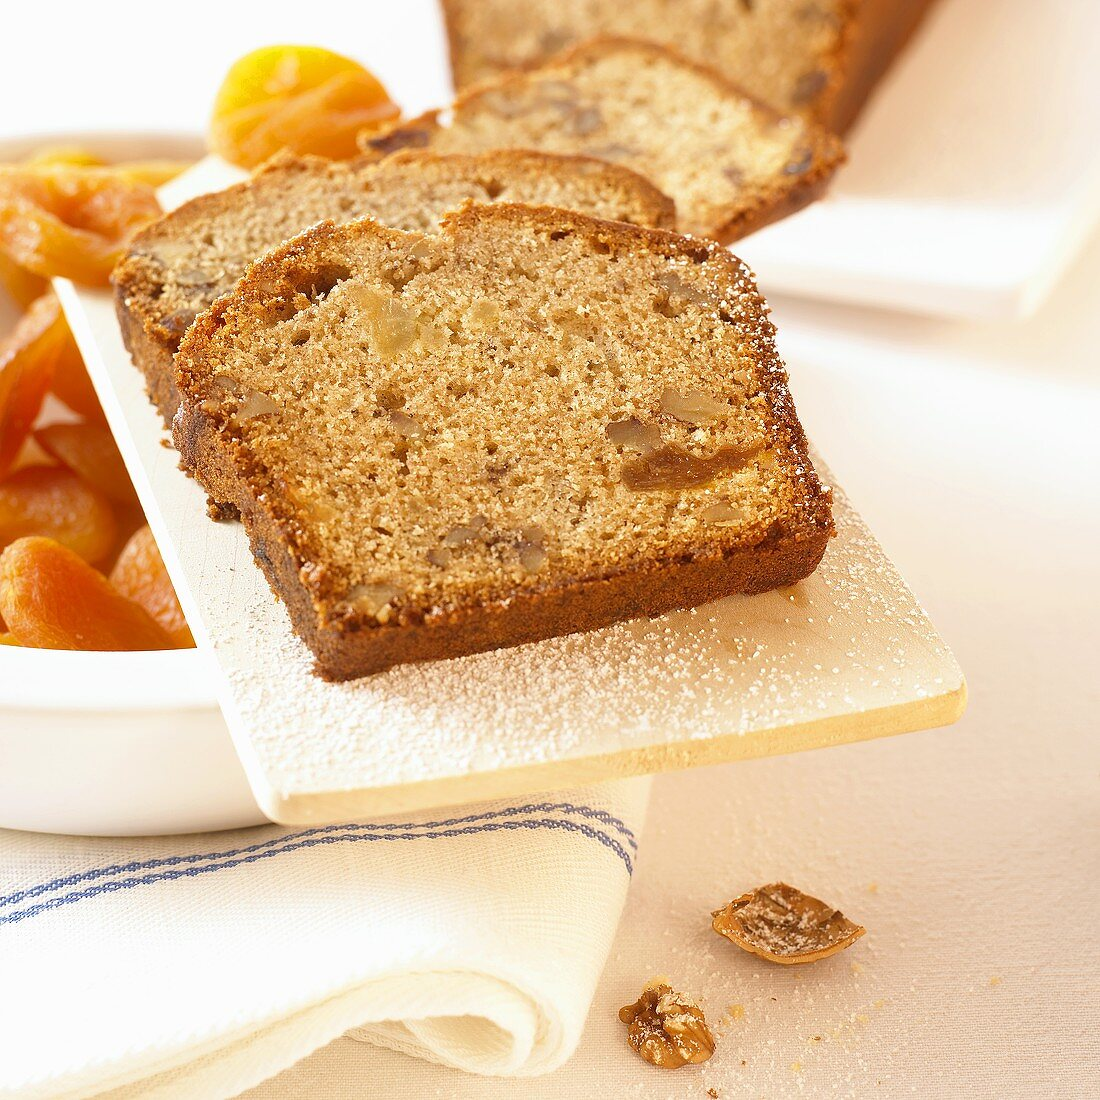 Apricot and nut loaf (several slices)